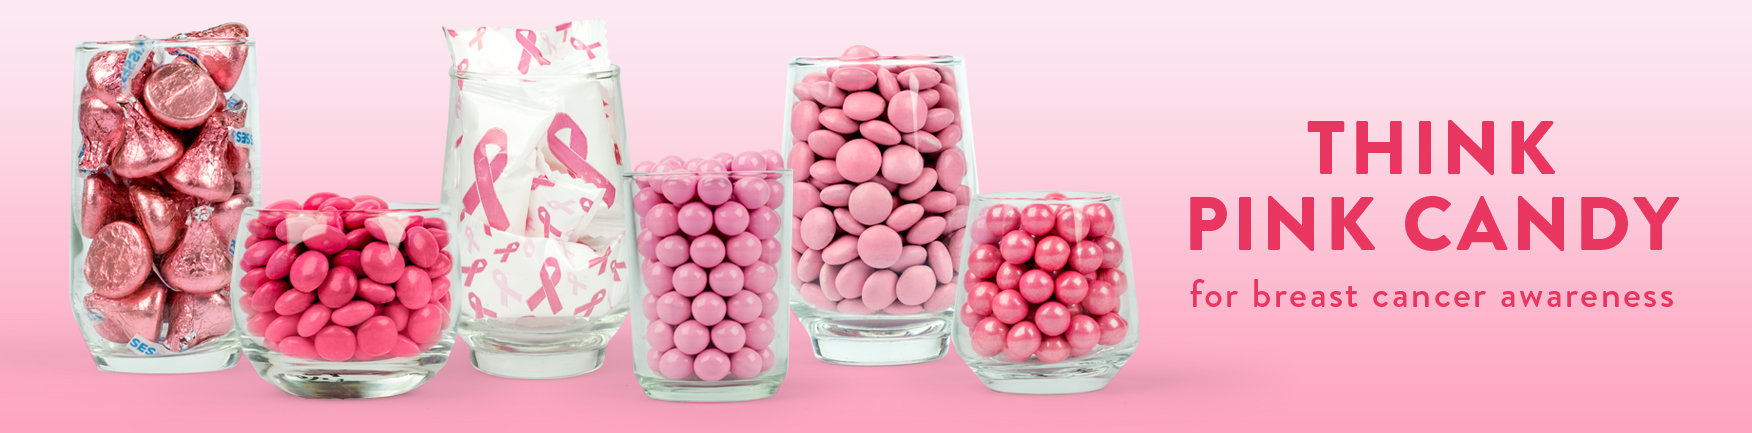 shop pink candy for breast cancer awareness